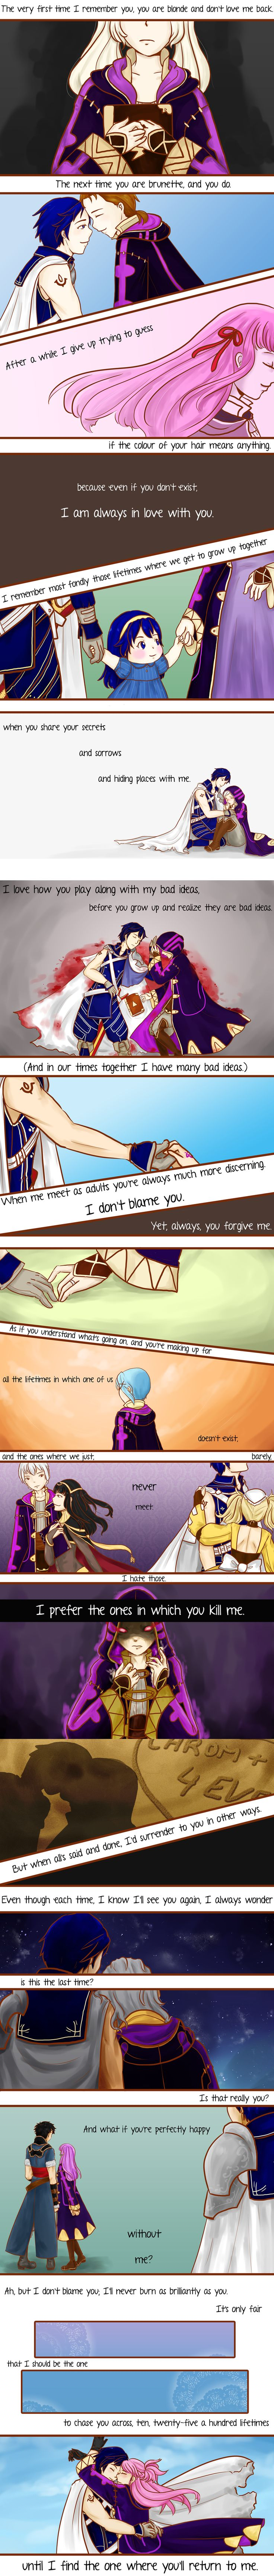 What a clever way to view new save files... Oh, the feels! (Don't worry, Chrom, I'll always choose you.)  25 Lives -Fire Emblem- by sirenlovesyou on DeviantArt